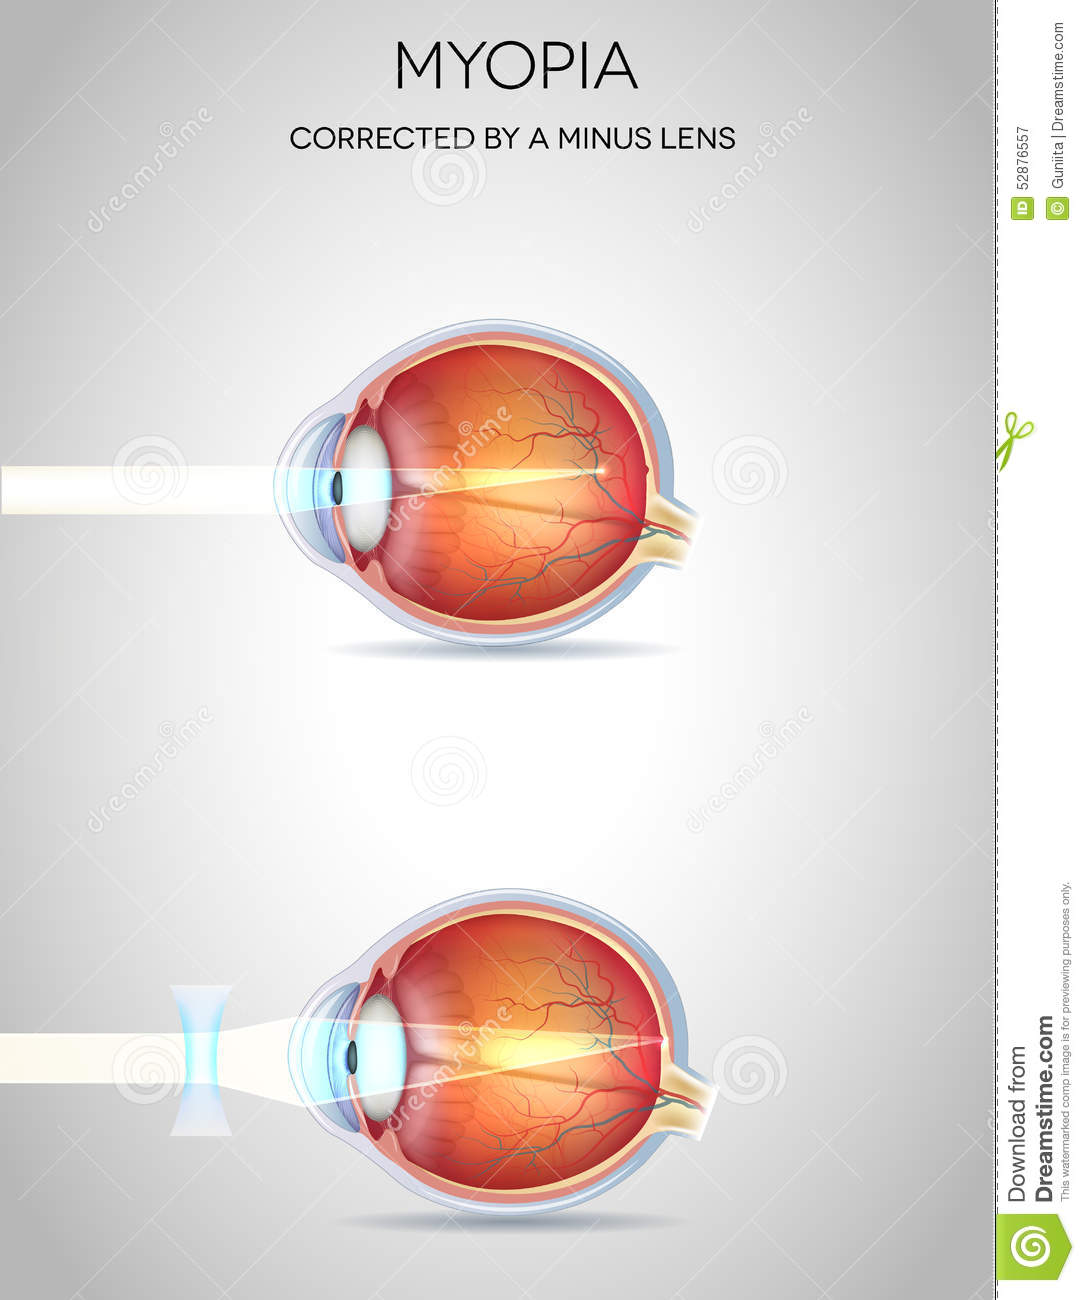 eye diseases nearsightedness essay Eye diseases like macular degeneration, glaucoma, and cataracts, can cause vision problems symptoms vary a lot among these disorders, so keep up with your eye exams  some vision changes can be .